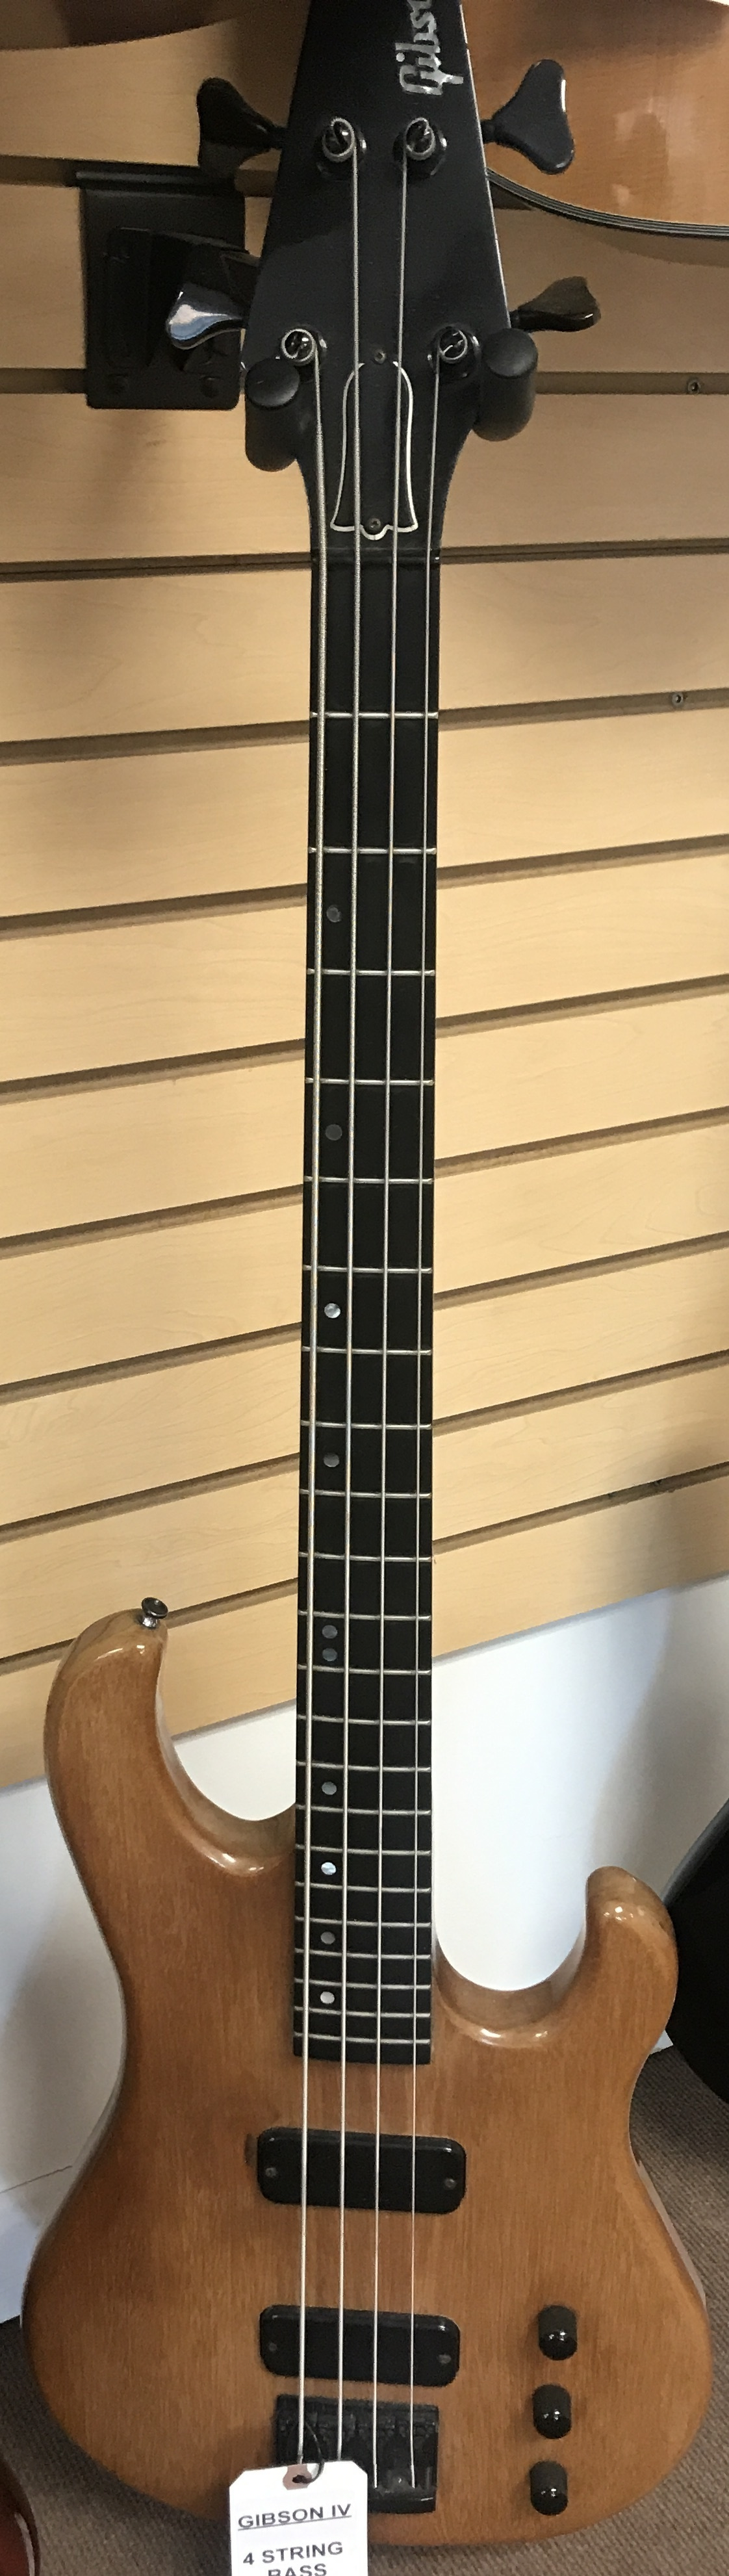 GIBSON IV BASS GUITAR